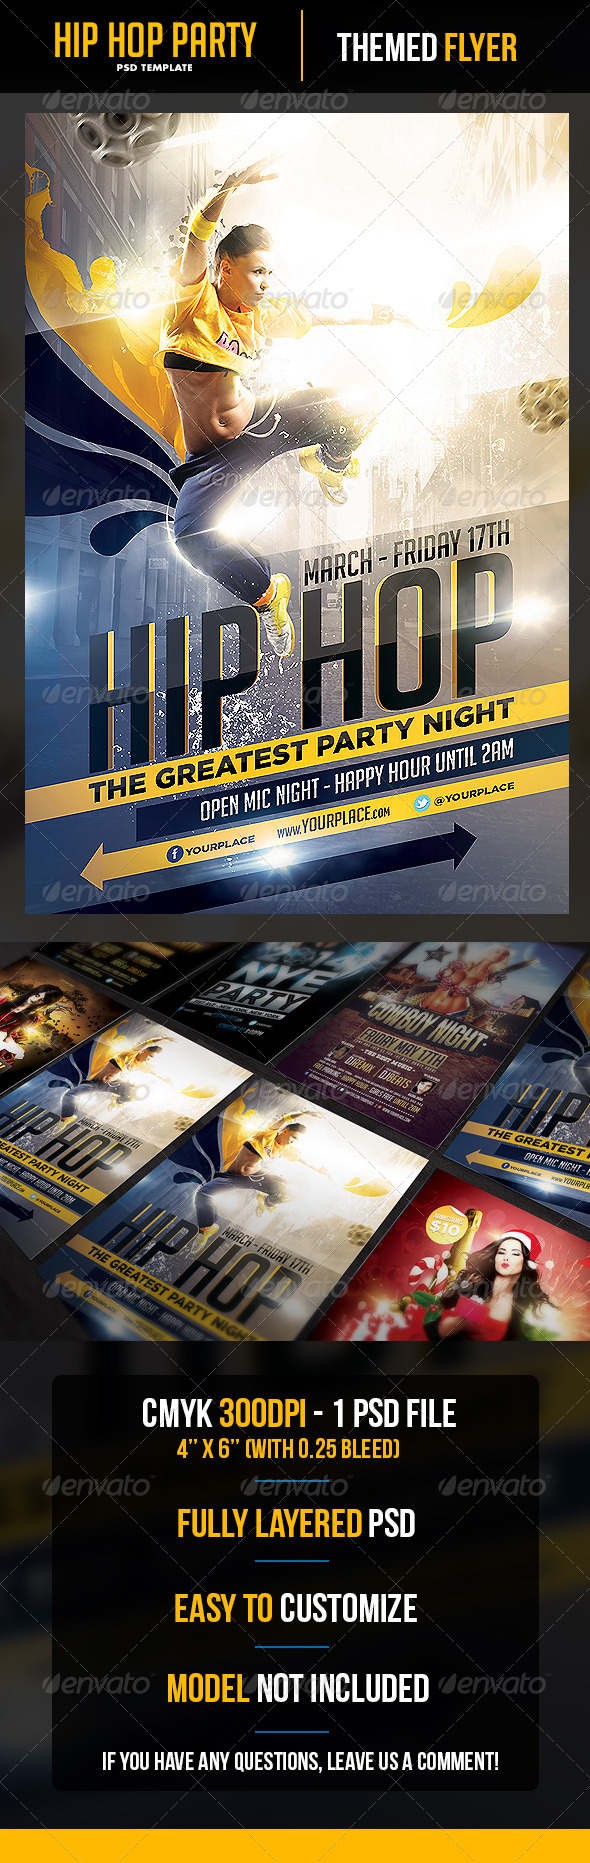 Hip Hop Party Flyer Template - Clubs & Parties Events